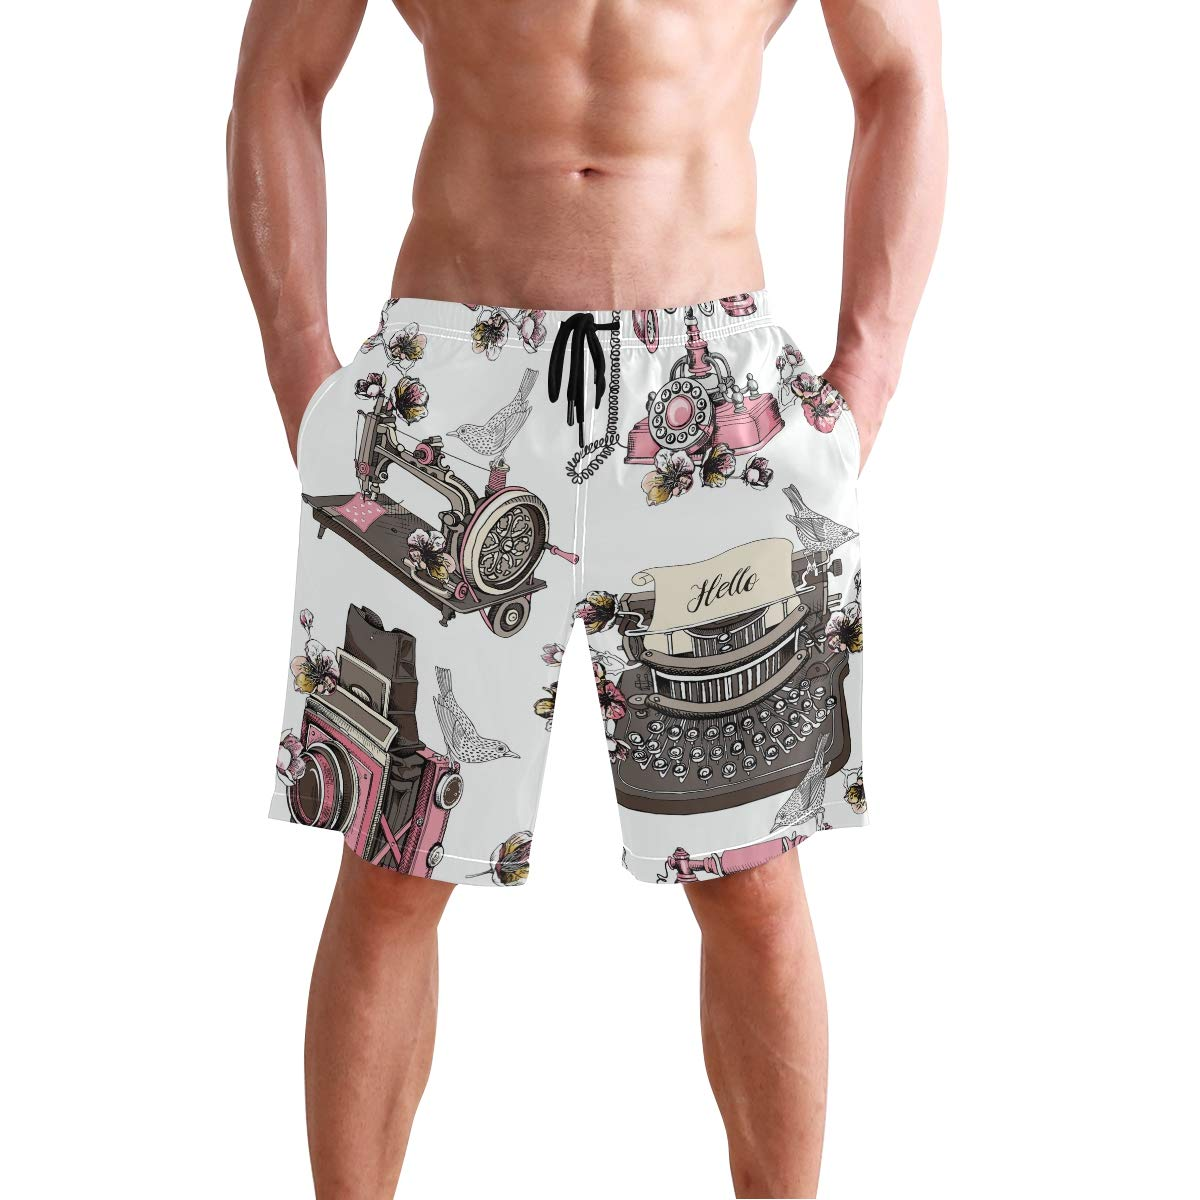 JERECY Mens Swim Trunks Vintage Retro Paris Camera Pink Quick Dry Board Shorts with Drawstring and Pockets